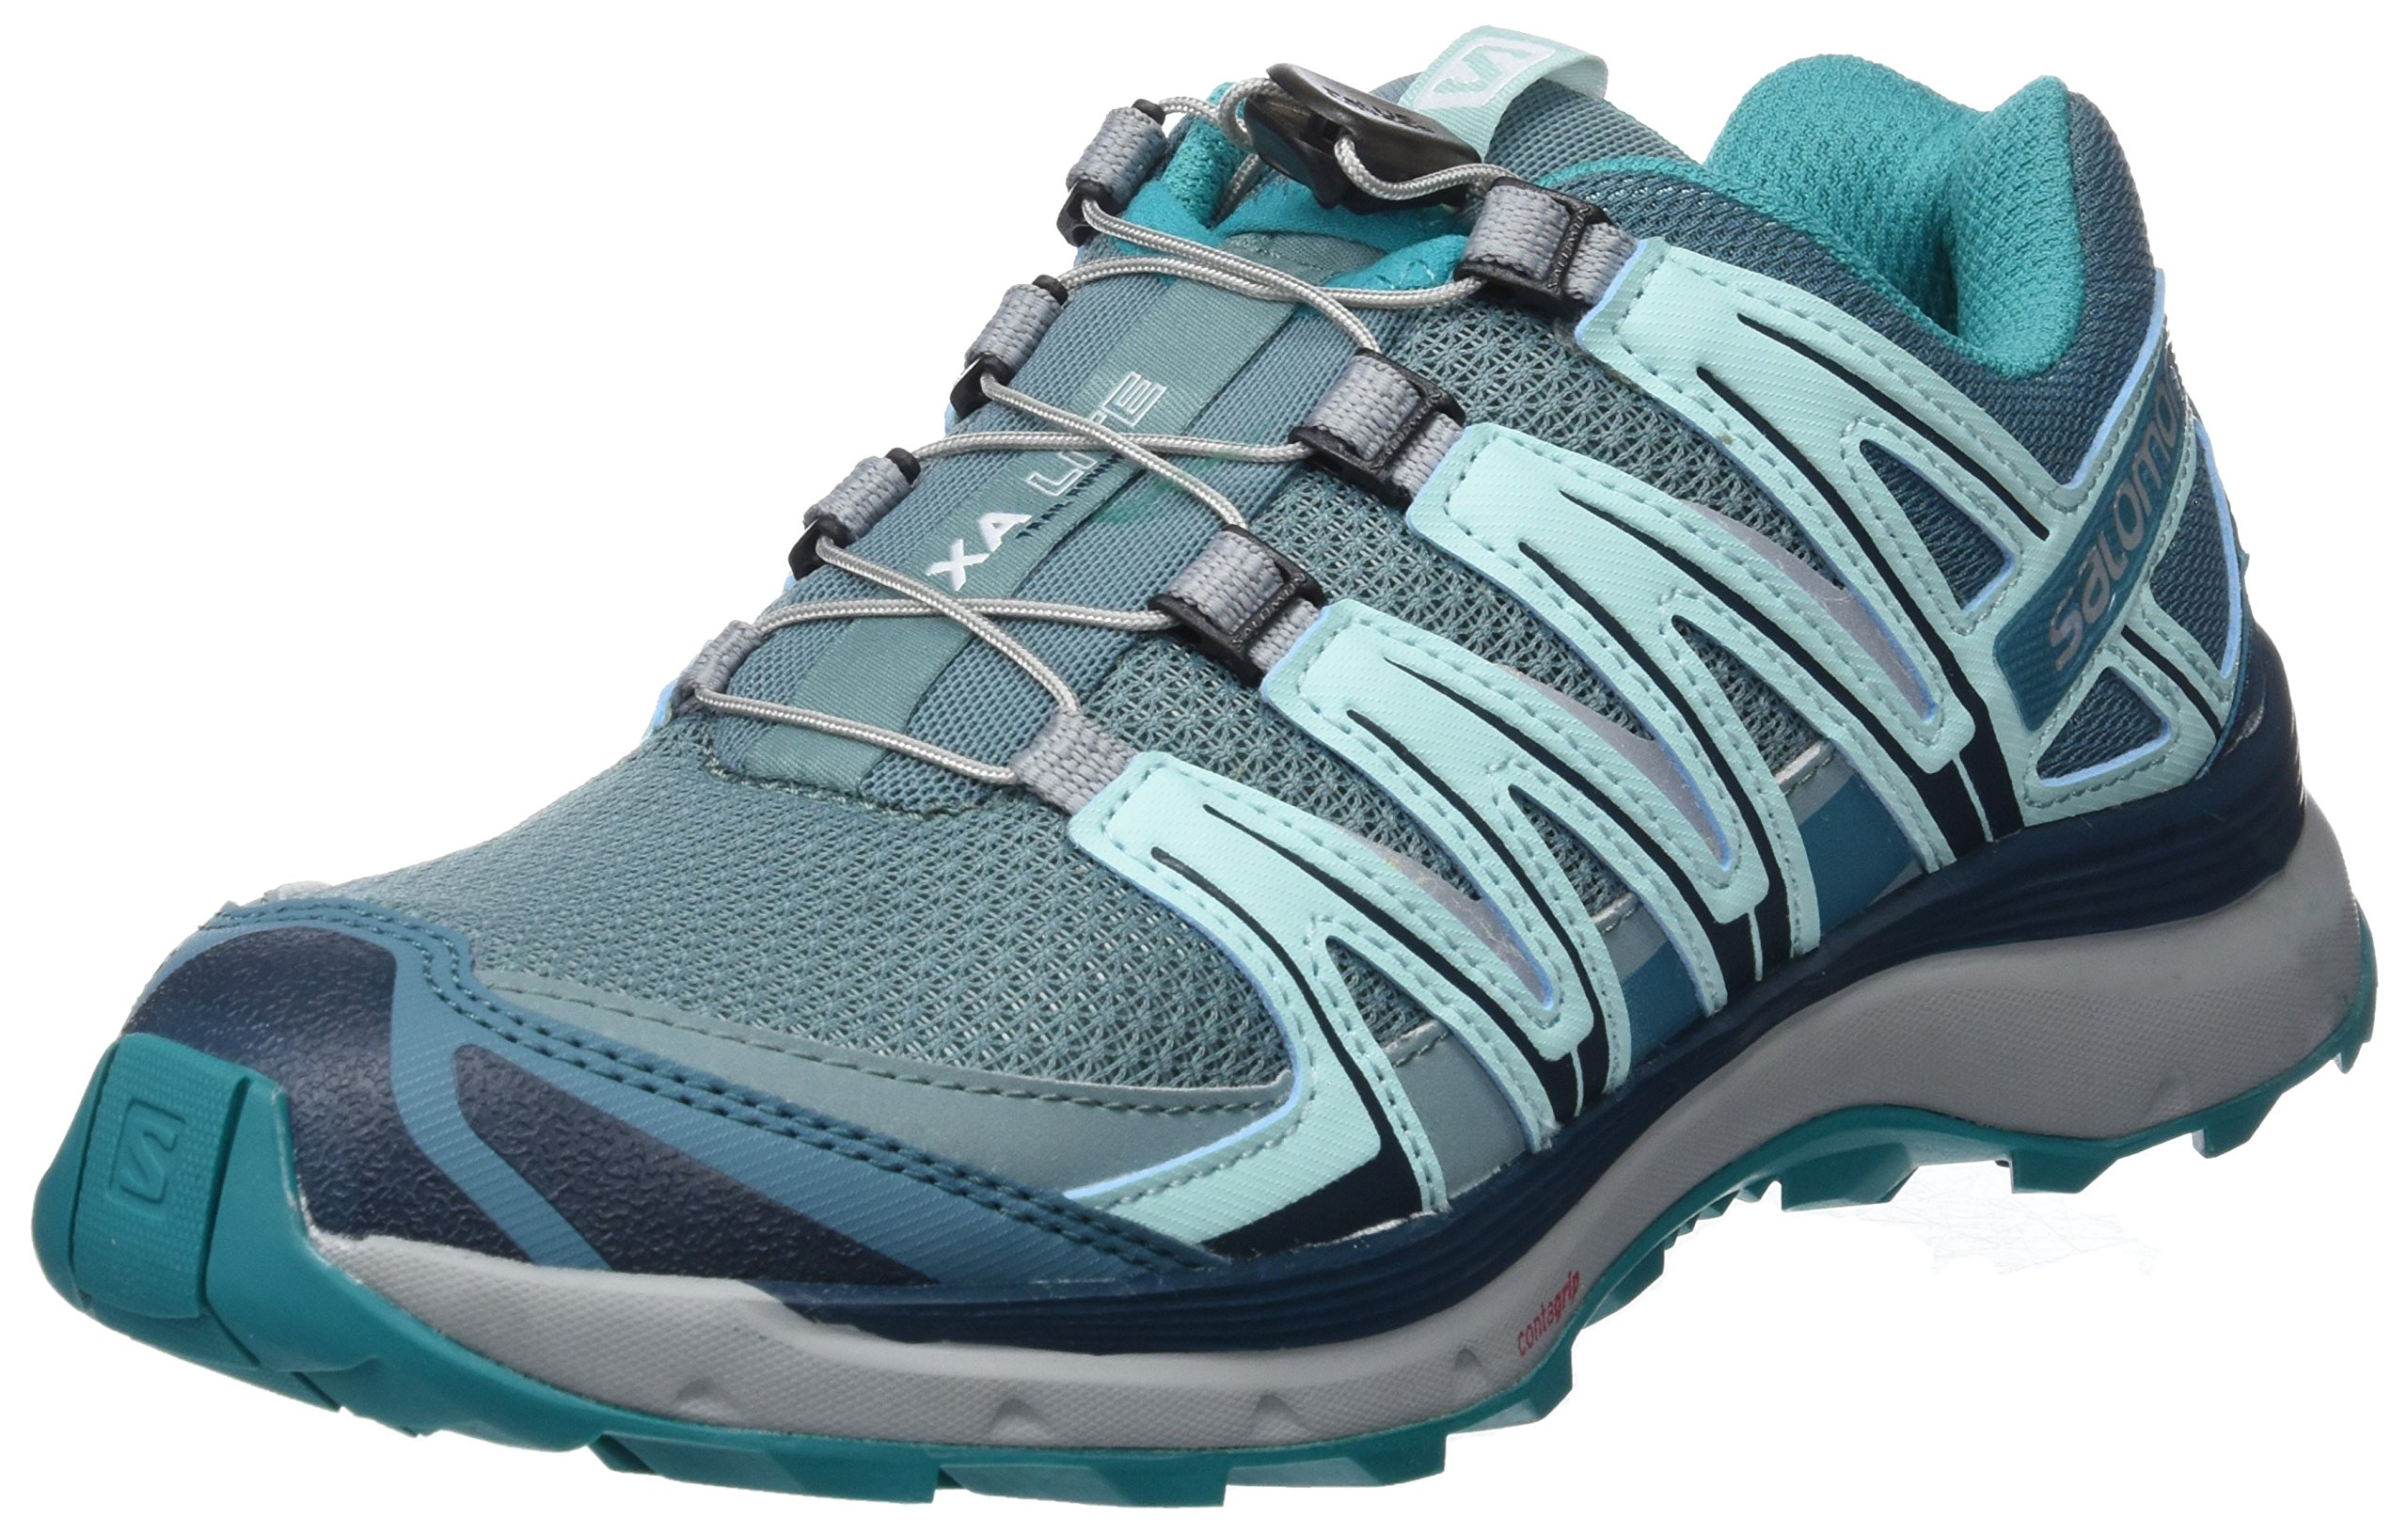 91yR4rRu8sL - SALOMON Women's Xa Lite W Trail Running Shoes